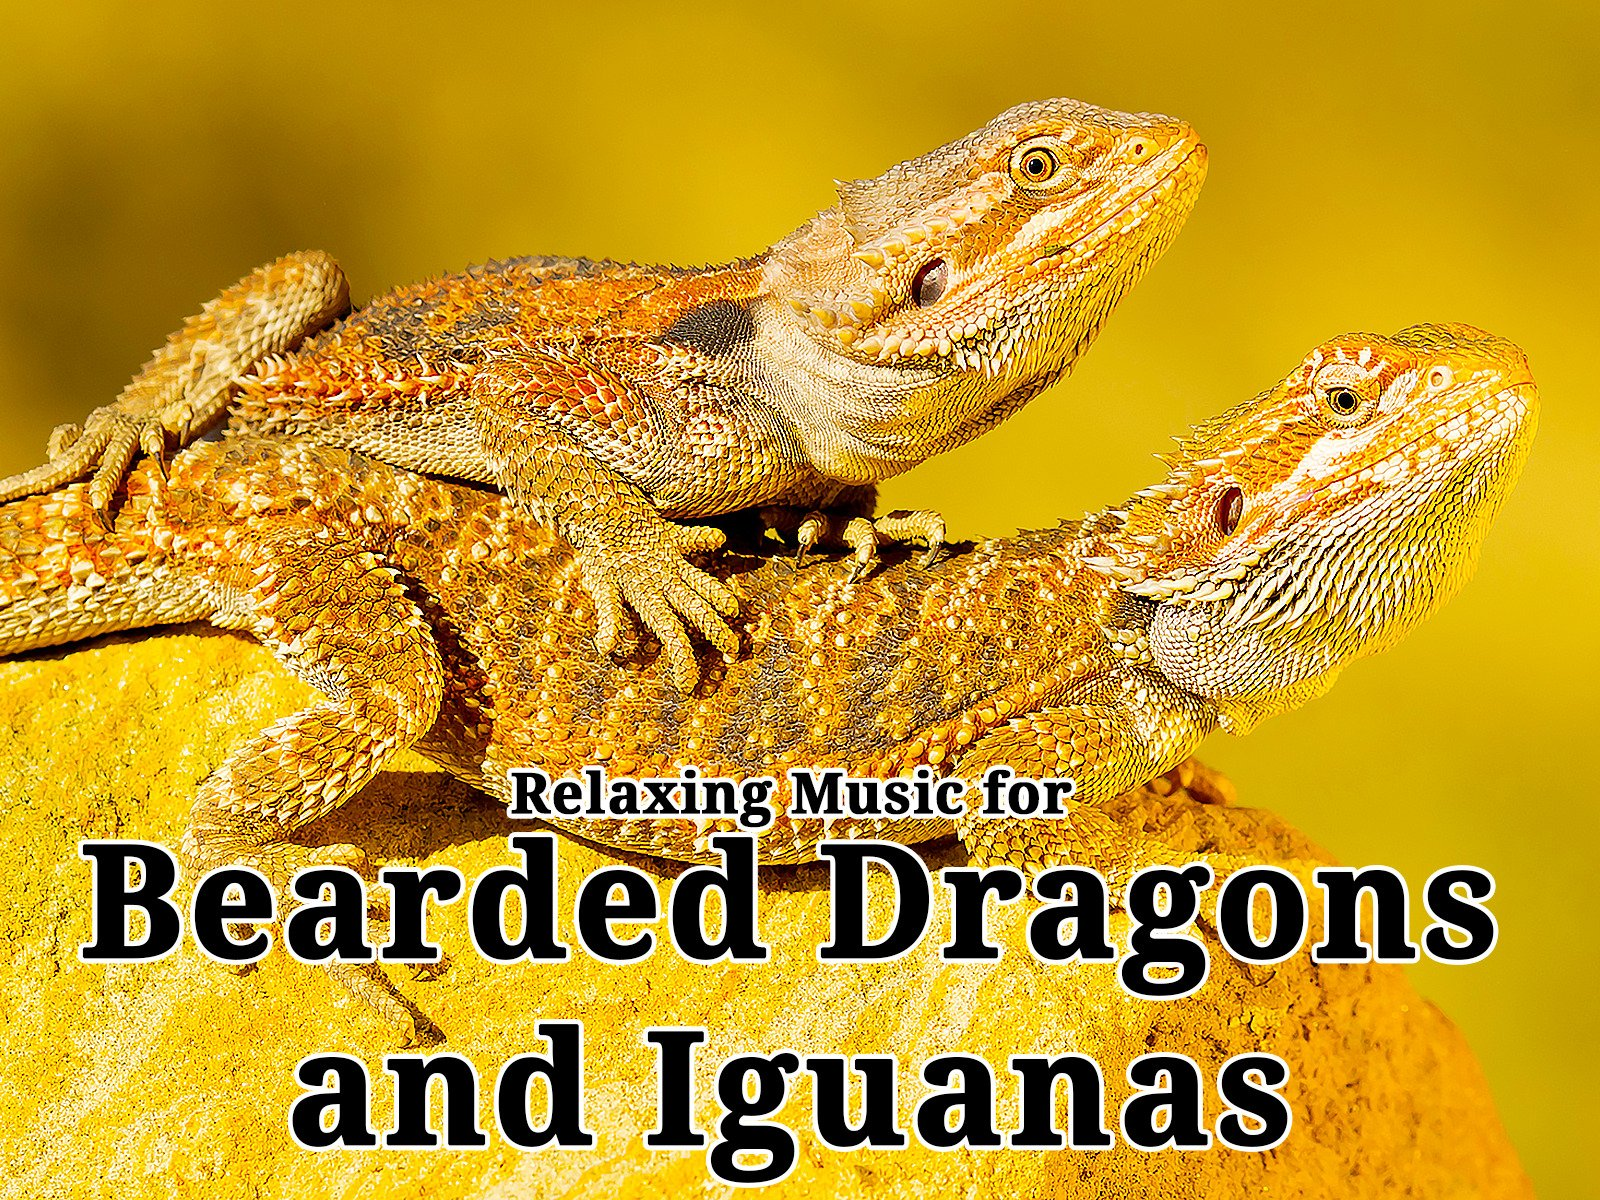 Relaxing Music for Bearded Dragons and Iguanas